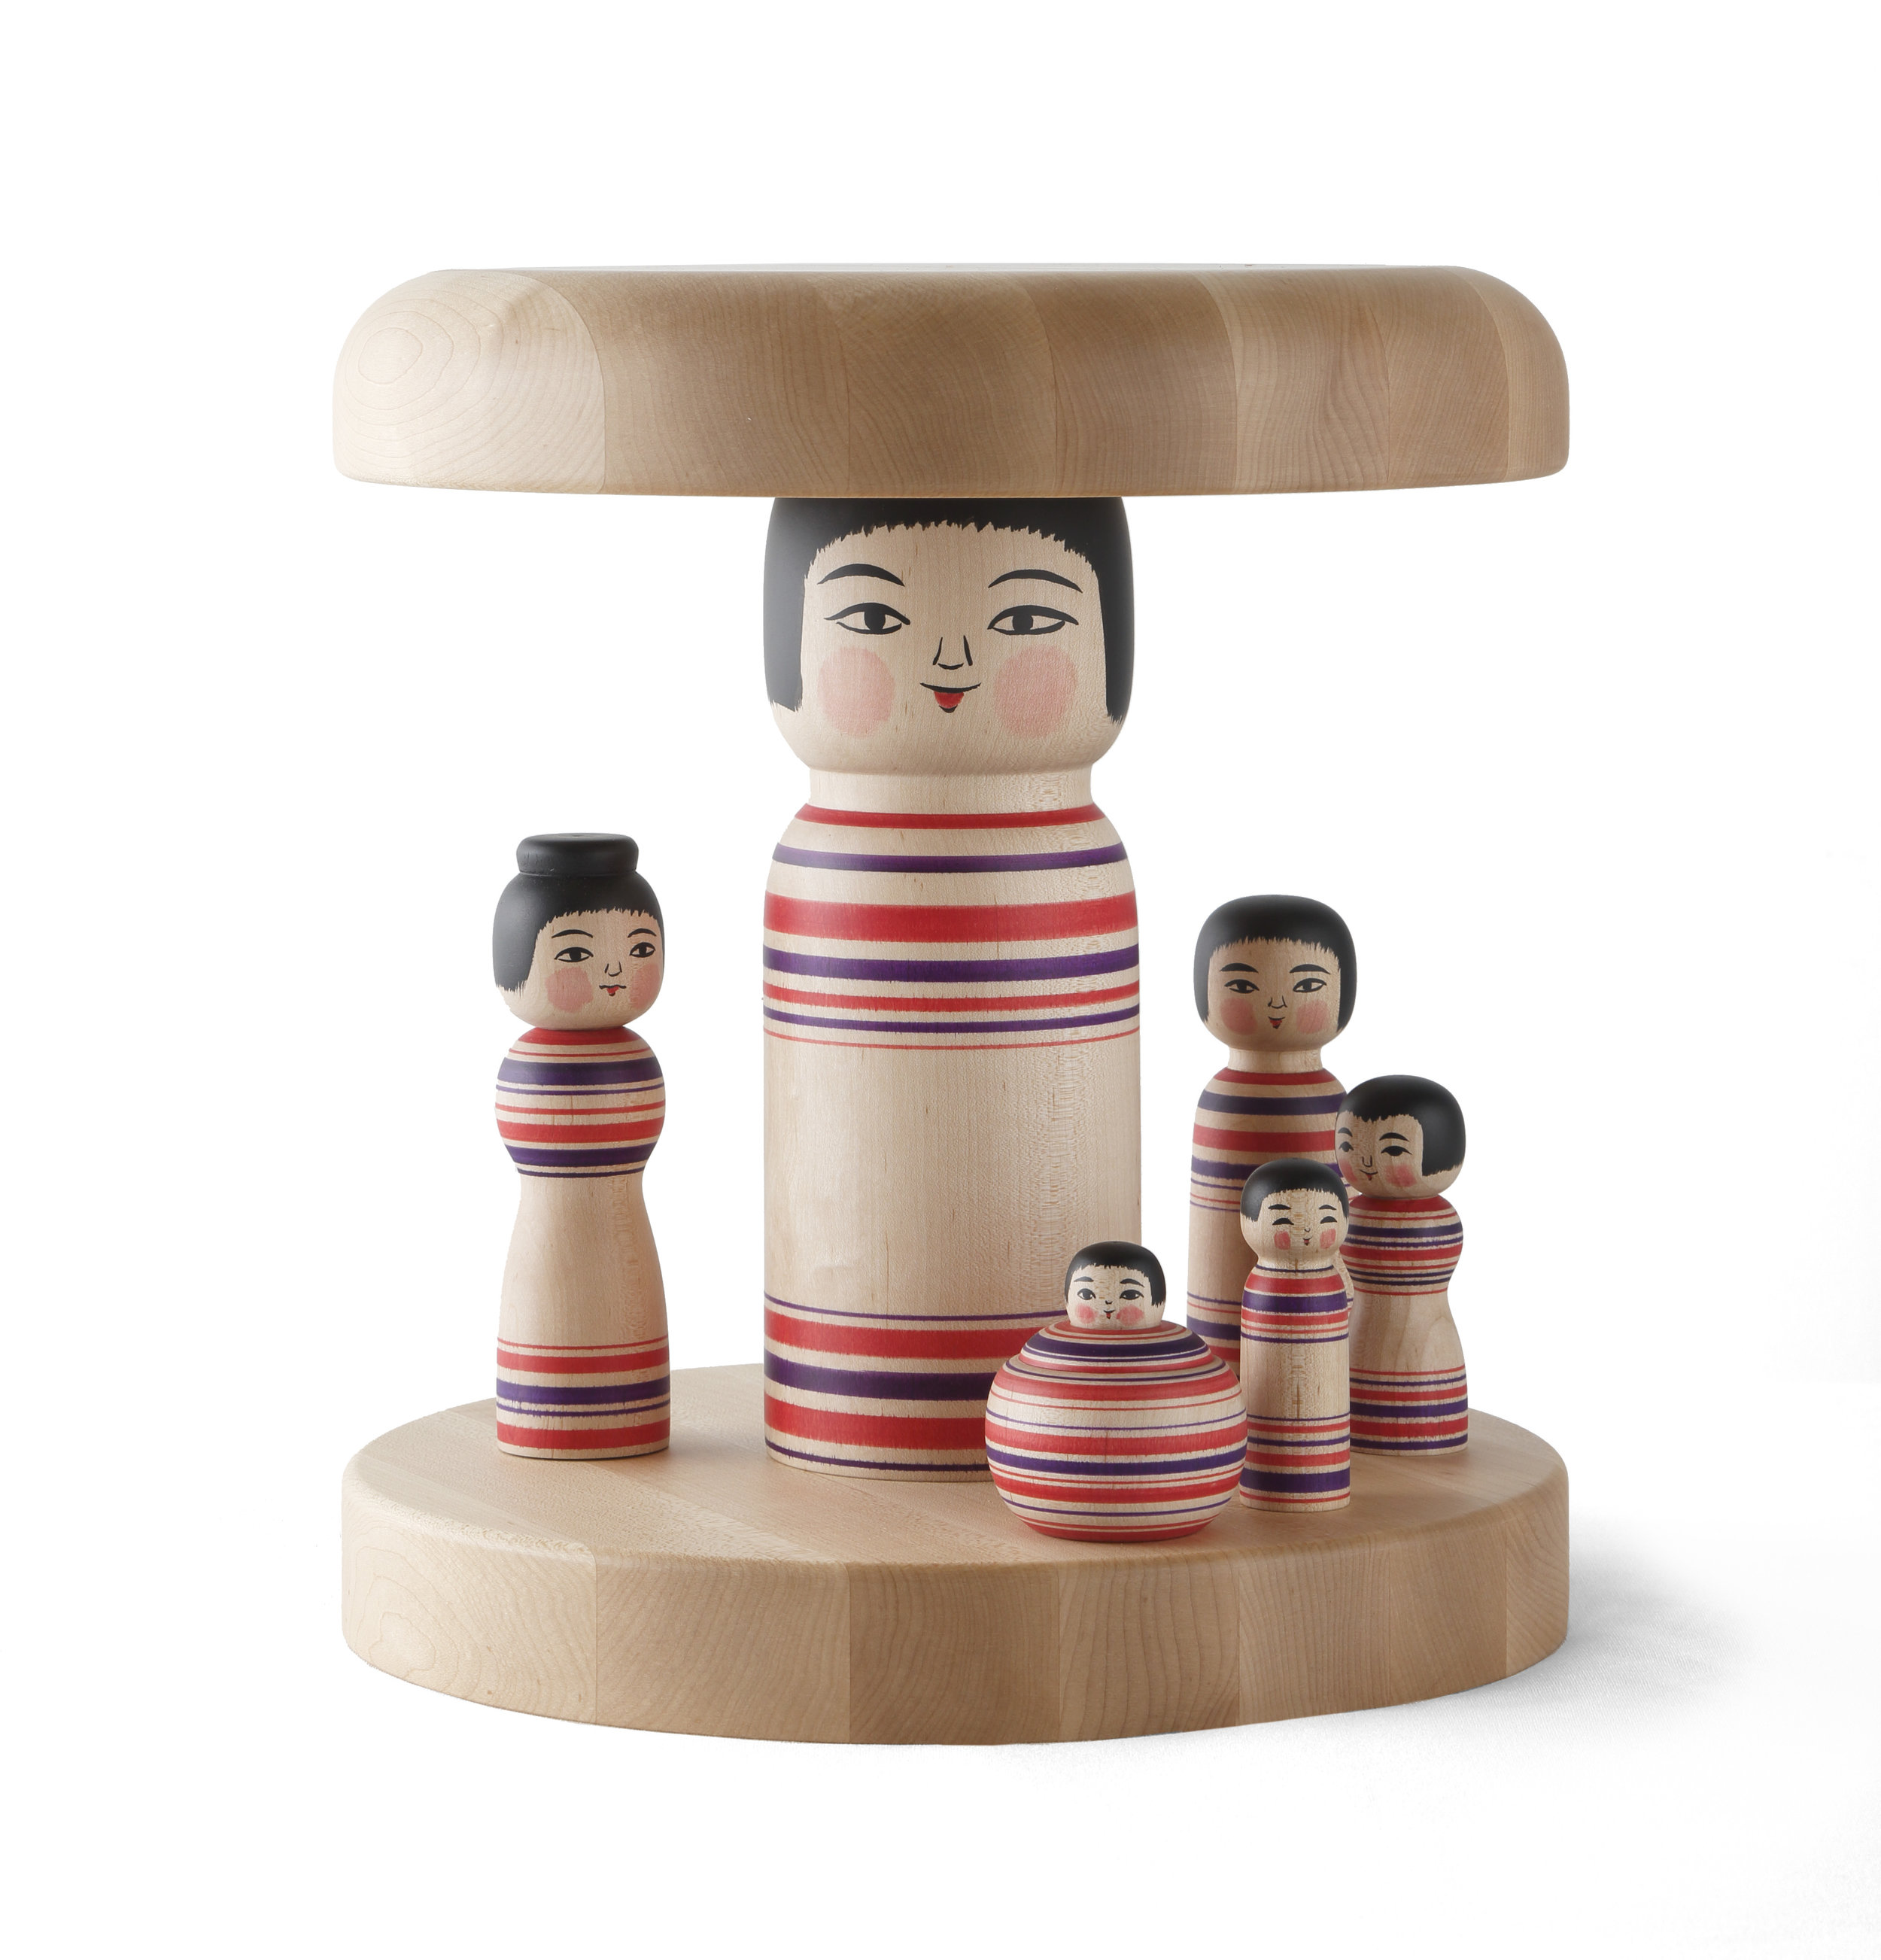 Kokeshi Family Stool, Part of Secrets of Japan collection. Material: Japanese & Finnish Maple wood, Paint, Lacquer. Made by Master Abo Mutsihide in Kuroishi, Japan. Maple top, base and assembly made by Punavuoren Puuhevonen, Finland. Designed by COMPANY / Aamu Song, 2015. Photo: COMPANY